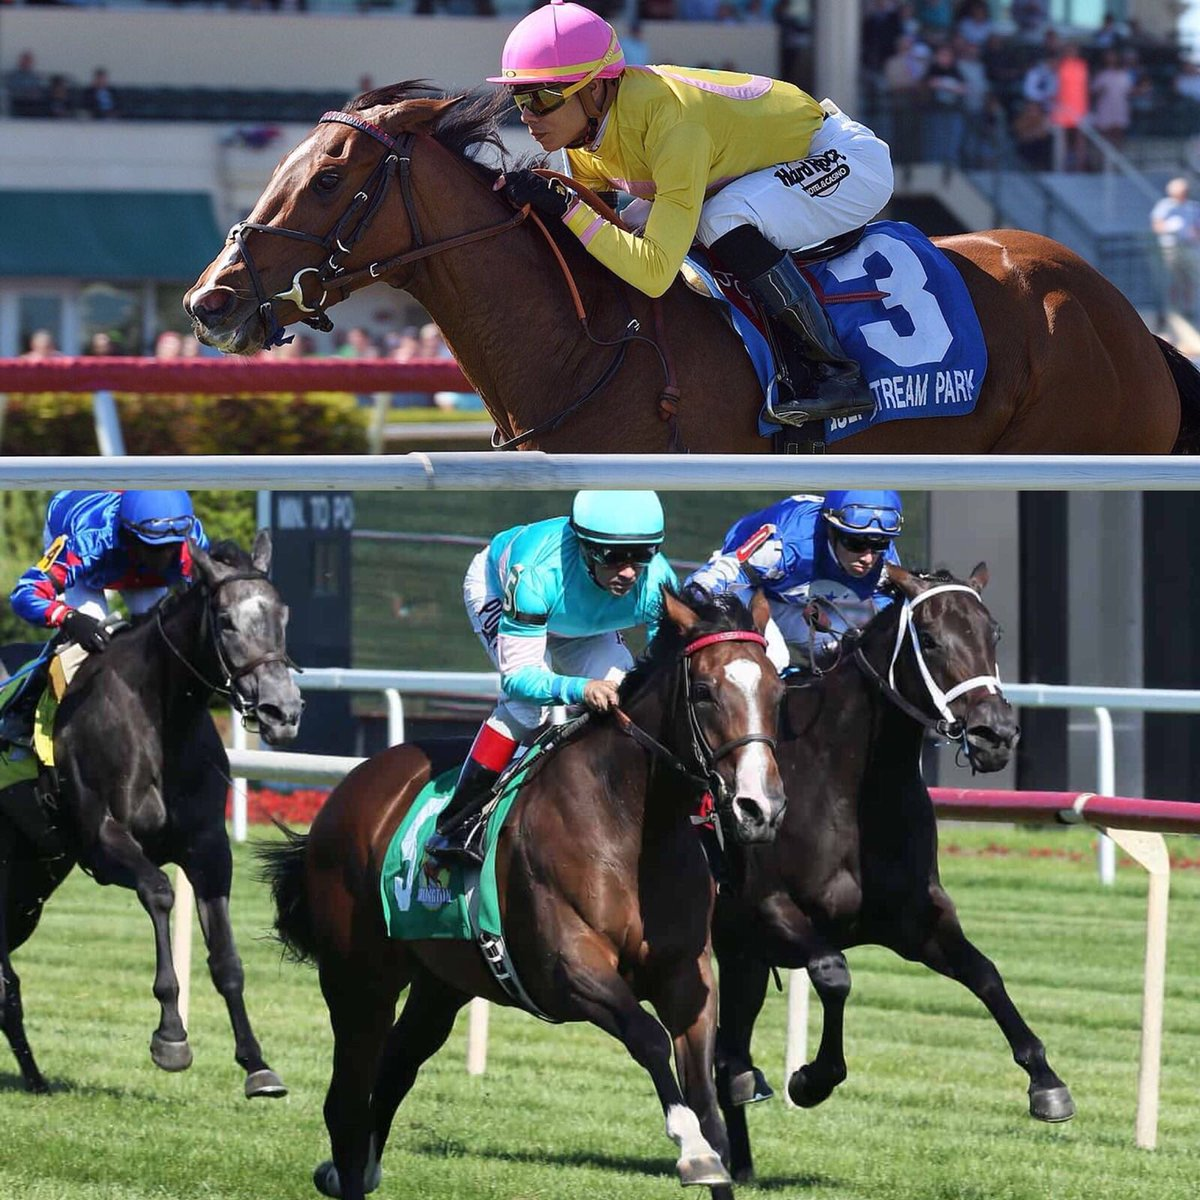 test Twitter Media - DO YOU HEAR THE PEOPLE SING 🎶 🇫🇷 grass tigresses bookend the top 3yo Filly grass races in 🇺🇸 on Saturday. G3W/G1P THEWAYIAM in the G2 Lake Placid. SW COLONIA in the G1 Del Mar Oaks. Both @MandoreAgency / BSW Purchases for Madaket, Dubb (both) and Elkstone. @GrahamMotion https://t.co/M2hjcN6nk4